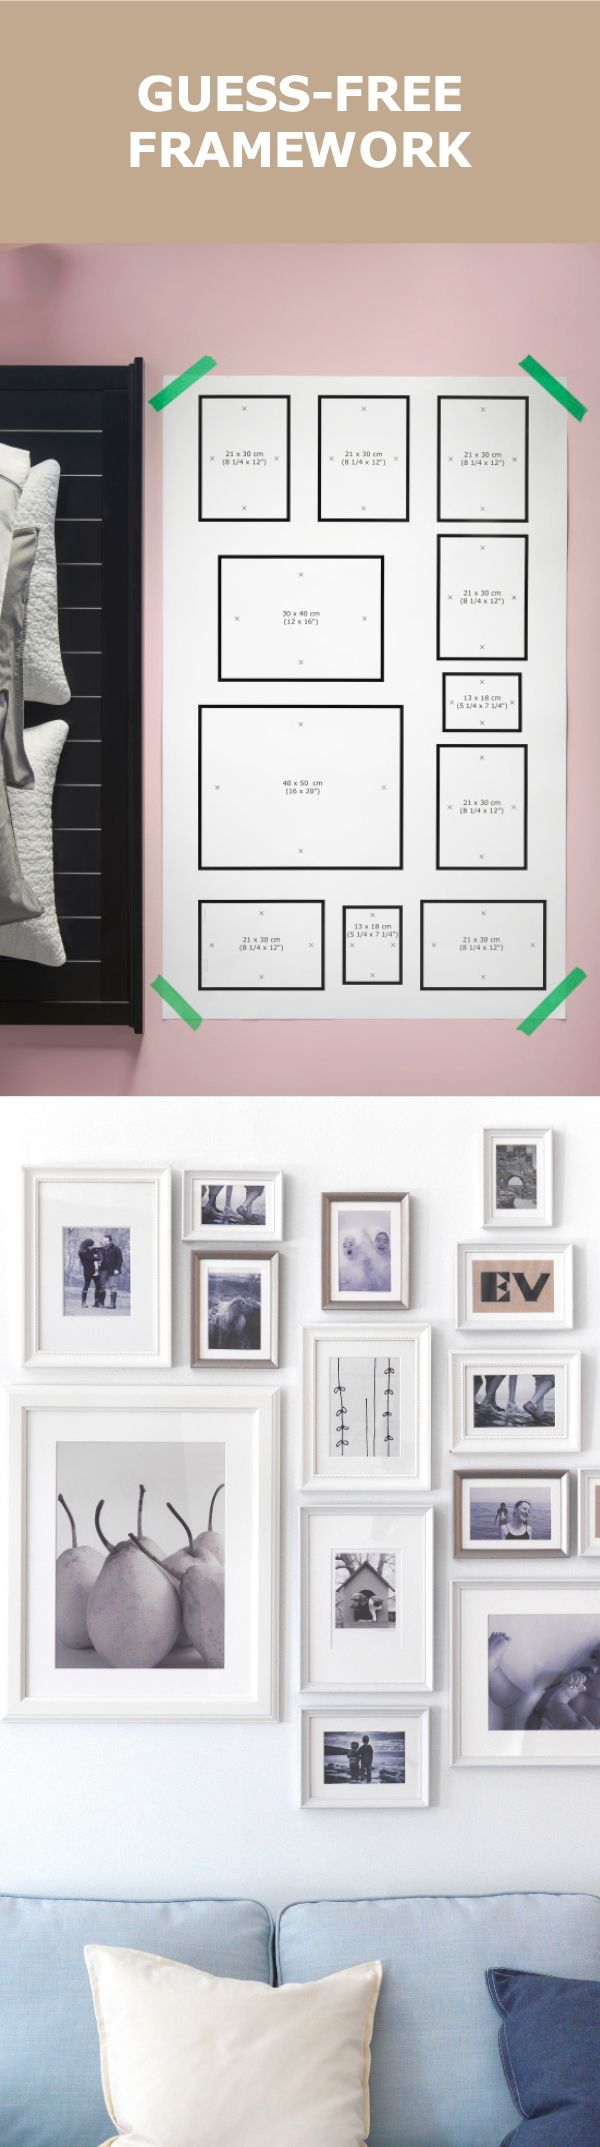 Our mtteby wall hanging template makes decorating easy just tape check out our stylists tips and secret tool to hang pictures and frames for a foolproof finish jeuxipadfo Images